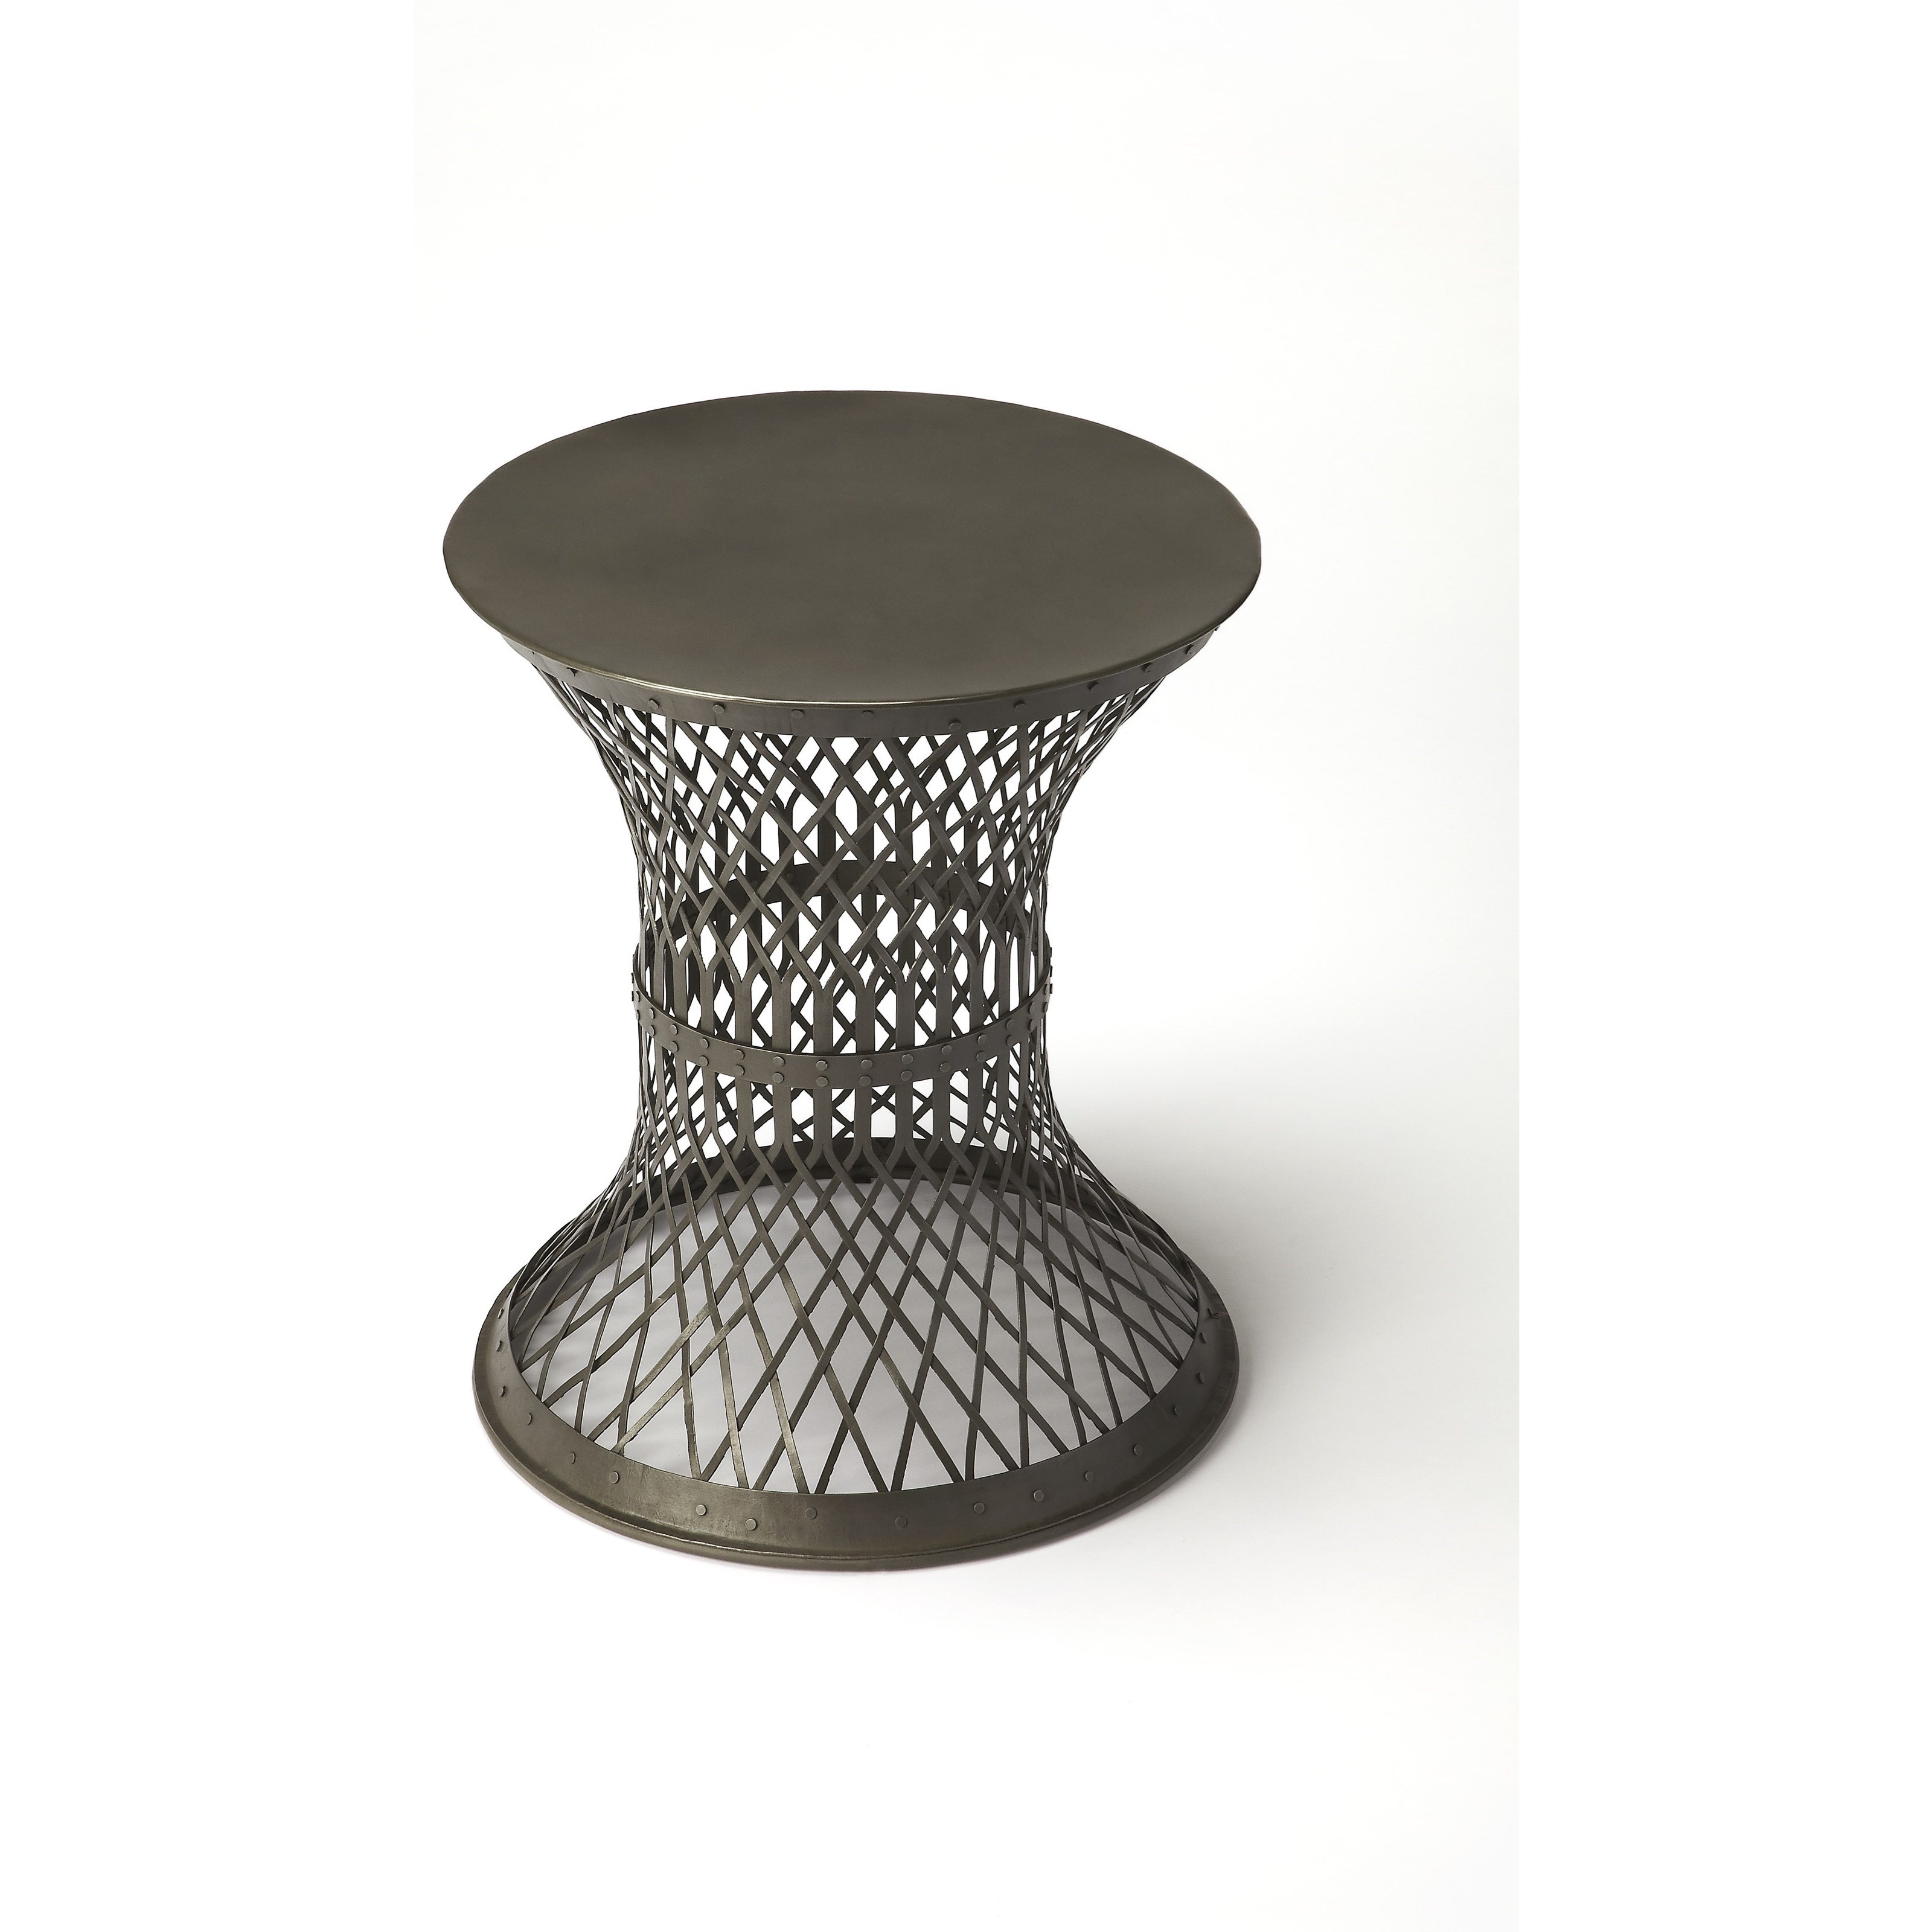 Butler Specialty Company Industrial Chic End Table - Item Number: 3671330